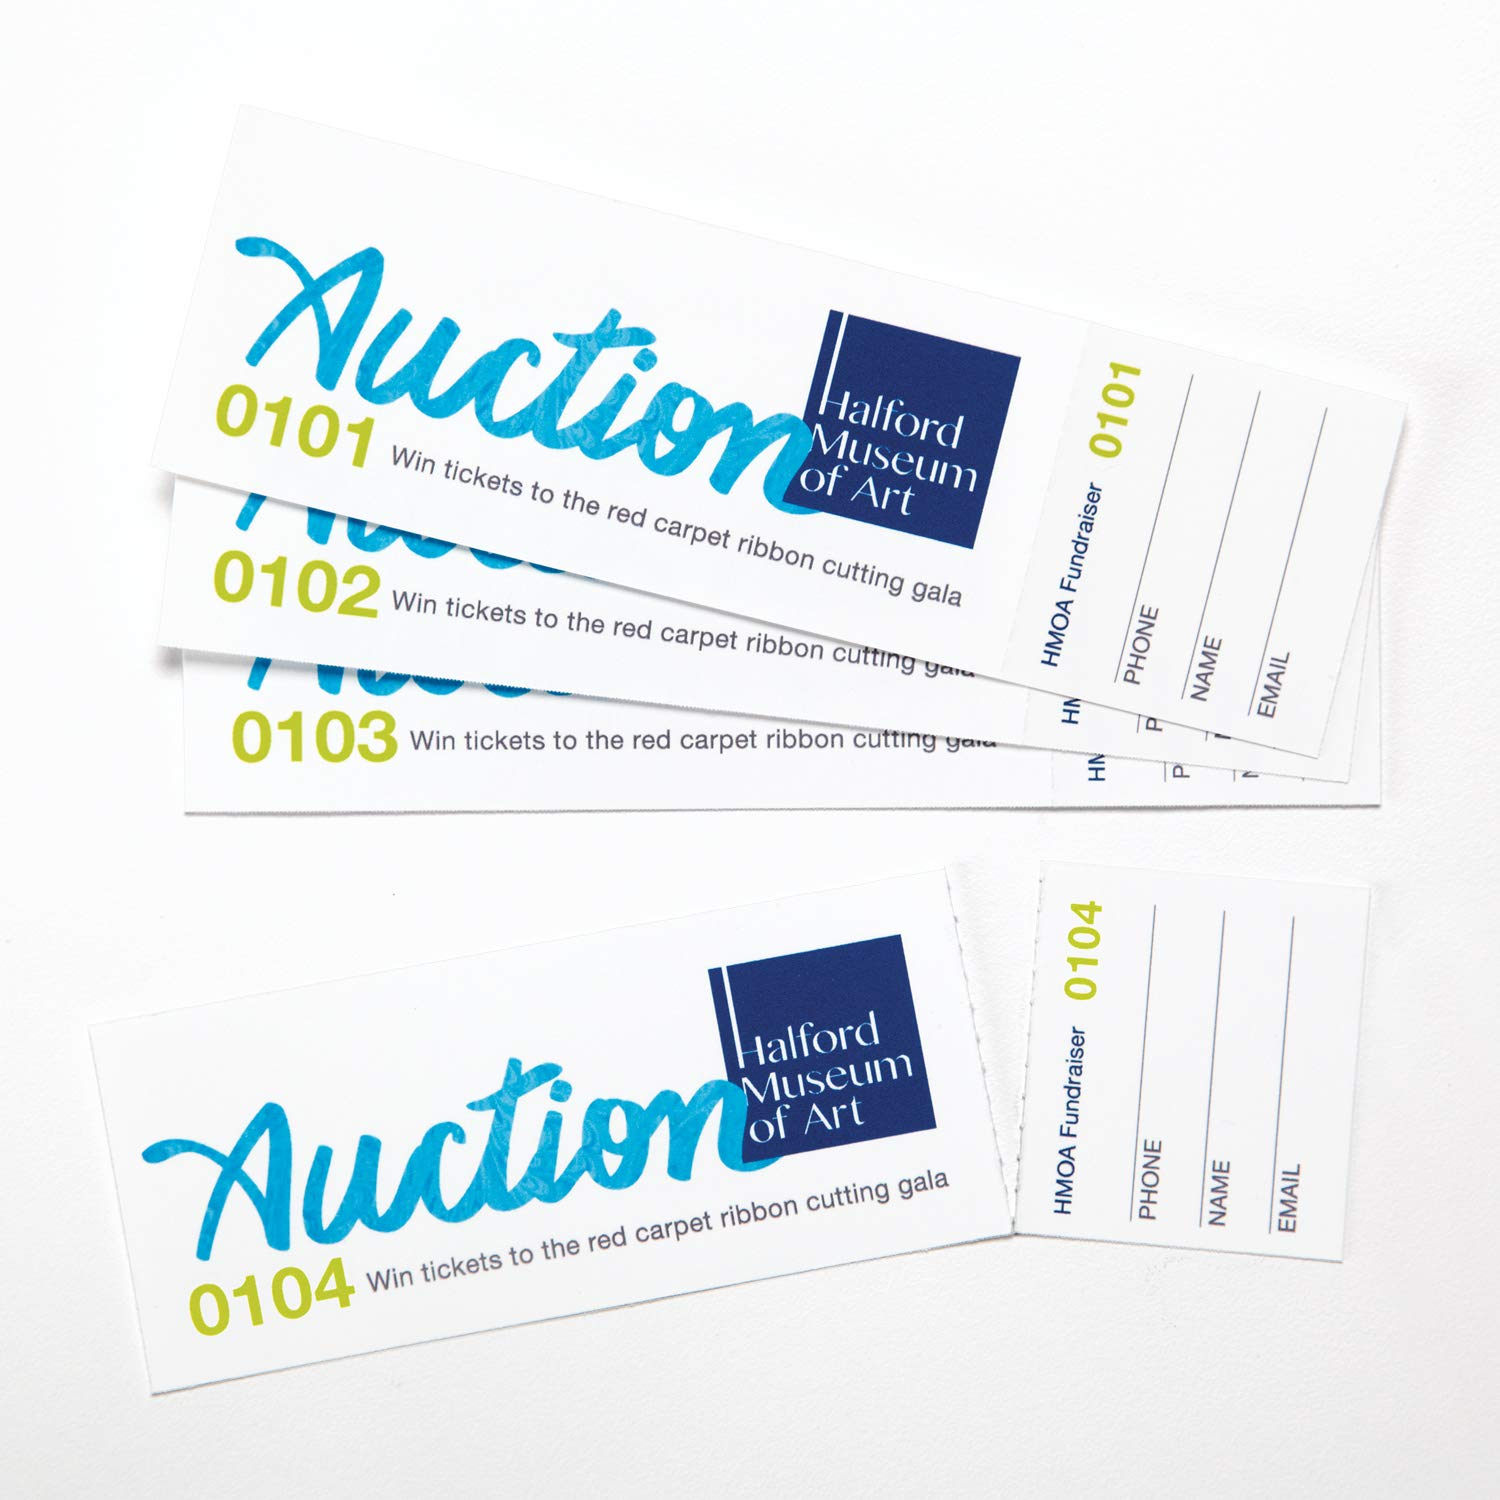 image about Printable Tickets With Tear Away Stubs called Avery Blank Printable Tickets, Tear-Absent Stubs, Perforated